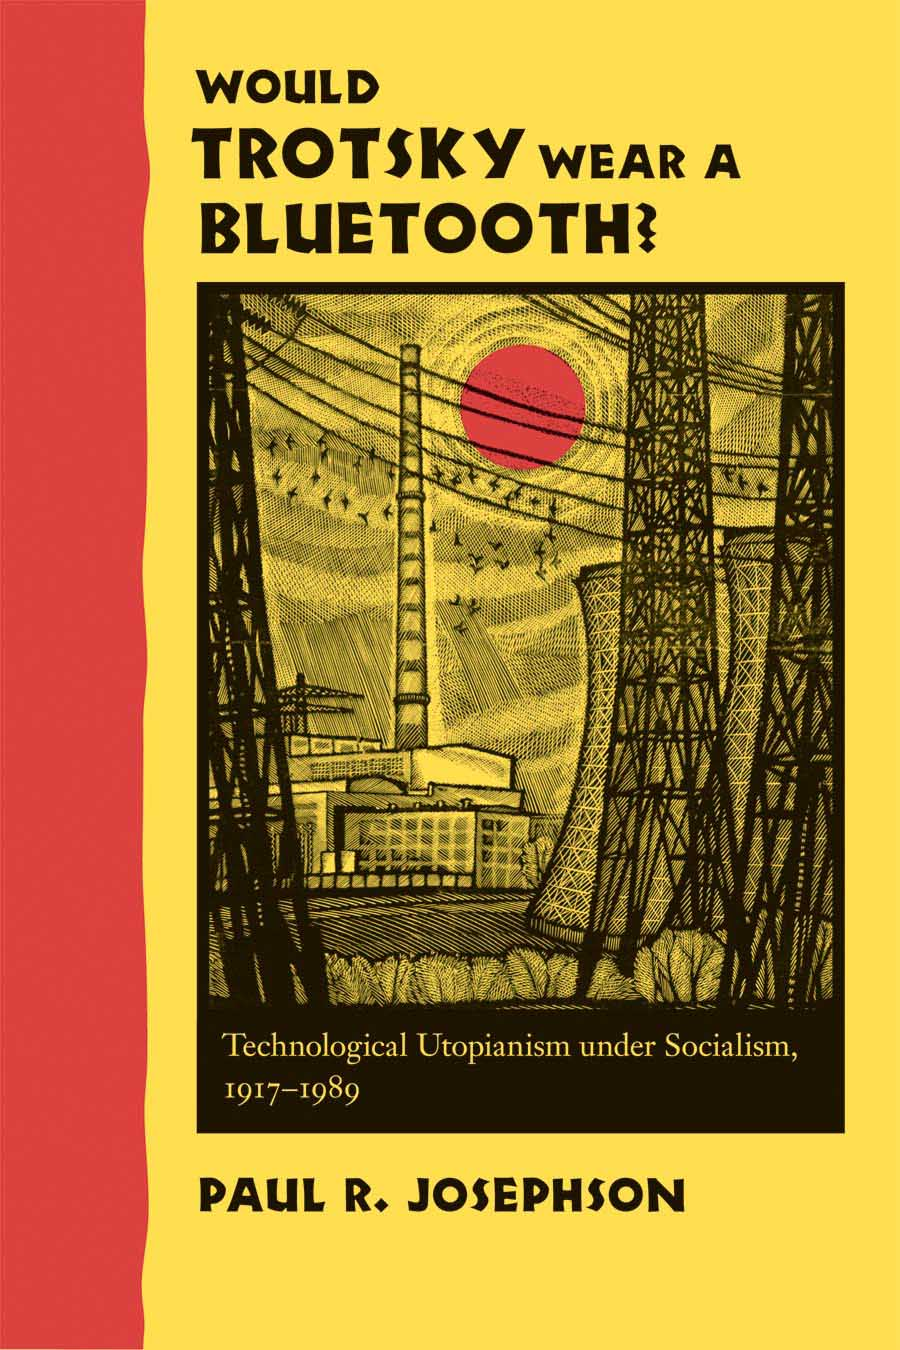 Would Trotsky Wear a Bluetooth? – Technological Utopianism under Socialism, 1917–1989 socialism for a sceptical age